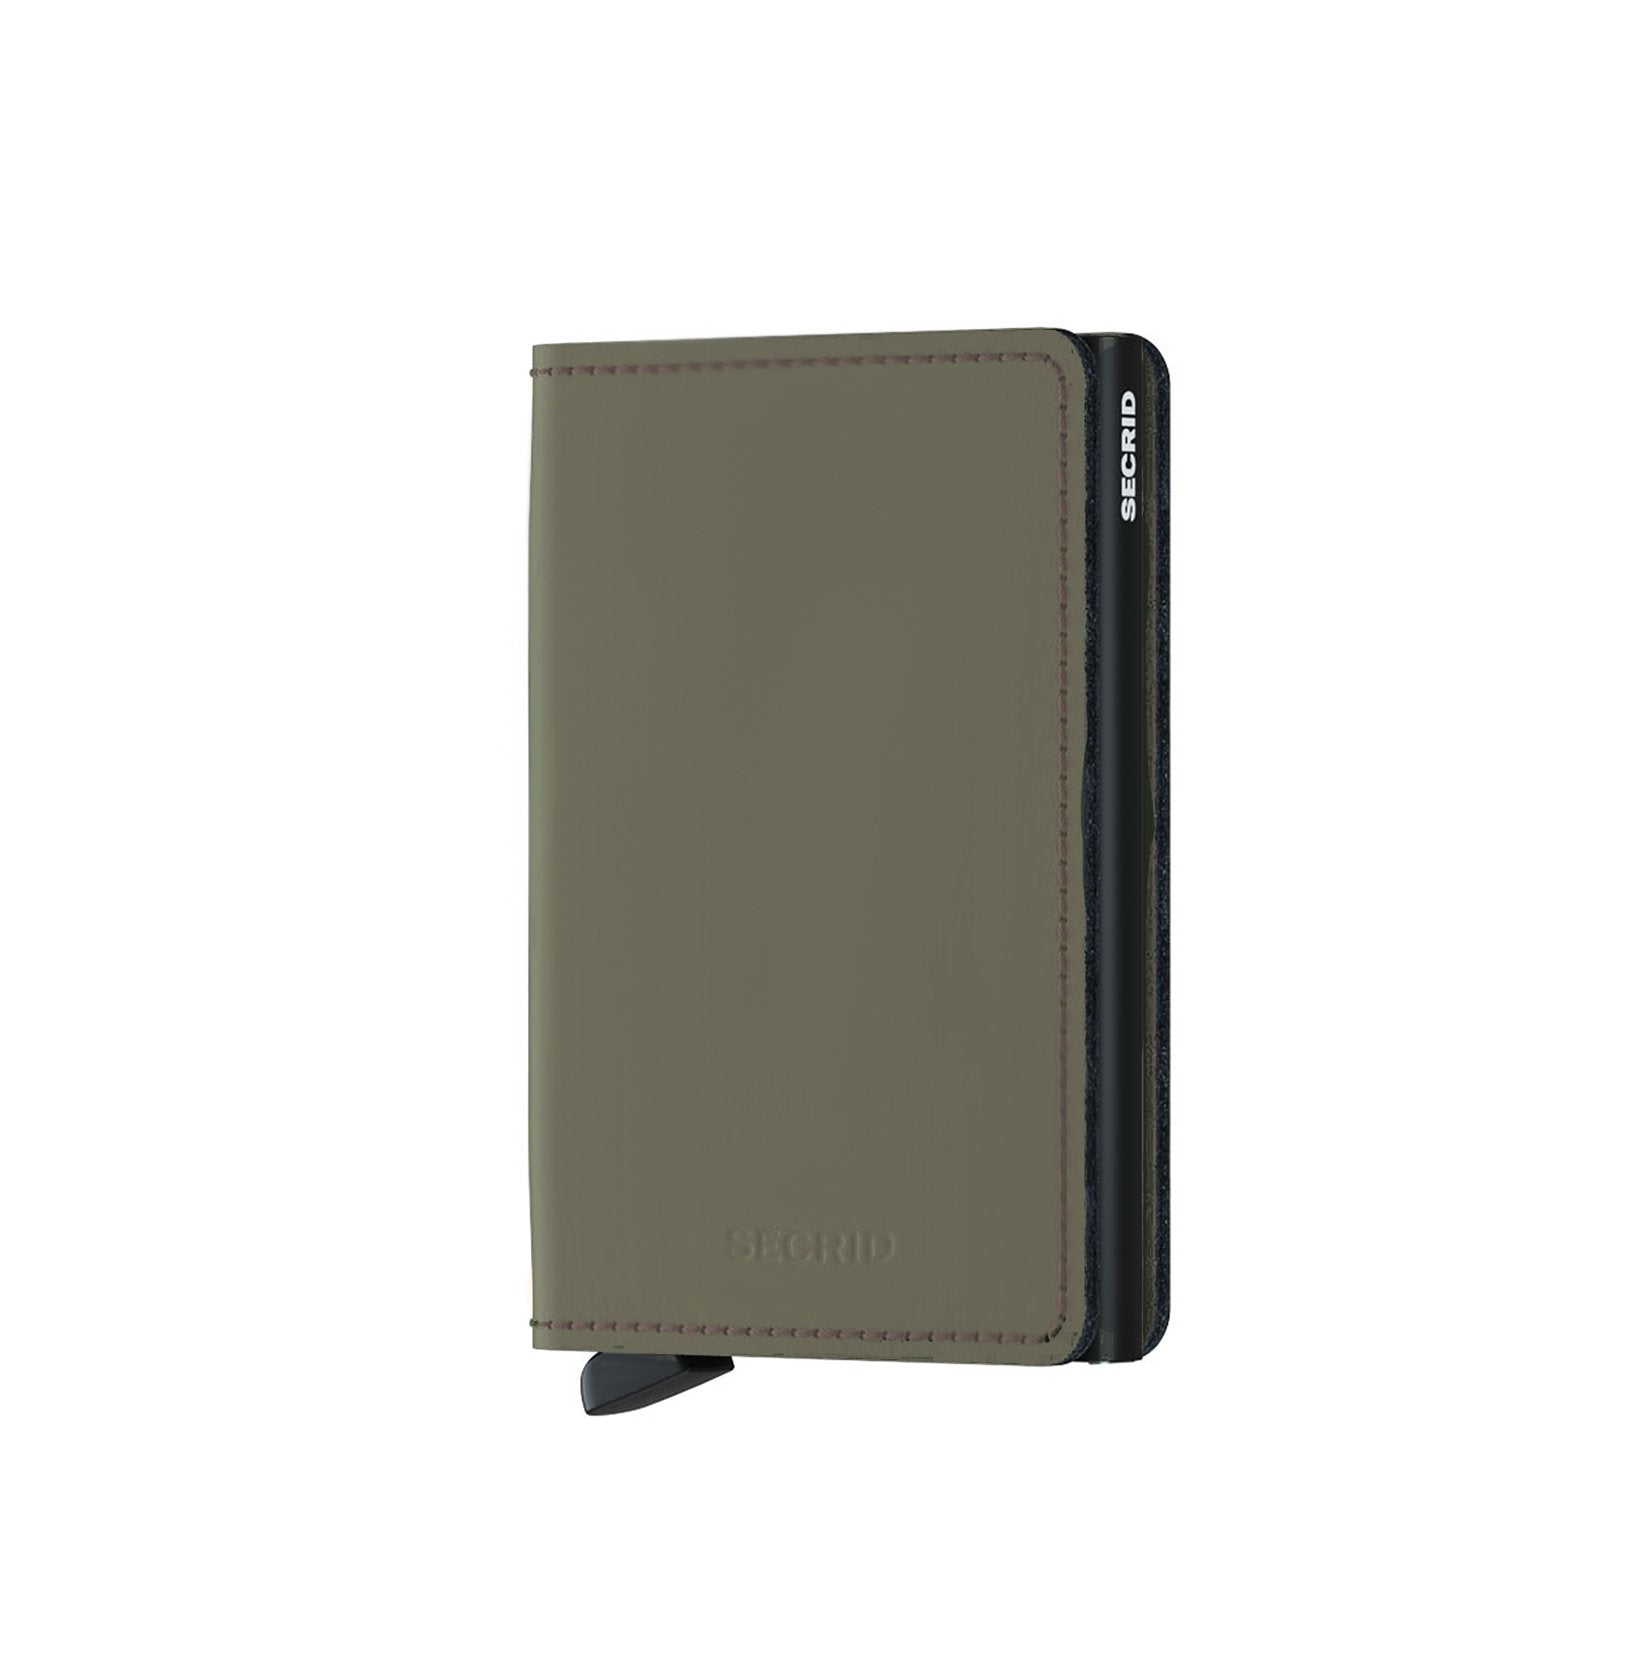 SECRID Slimwallet Matte Green Black